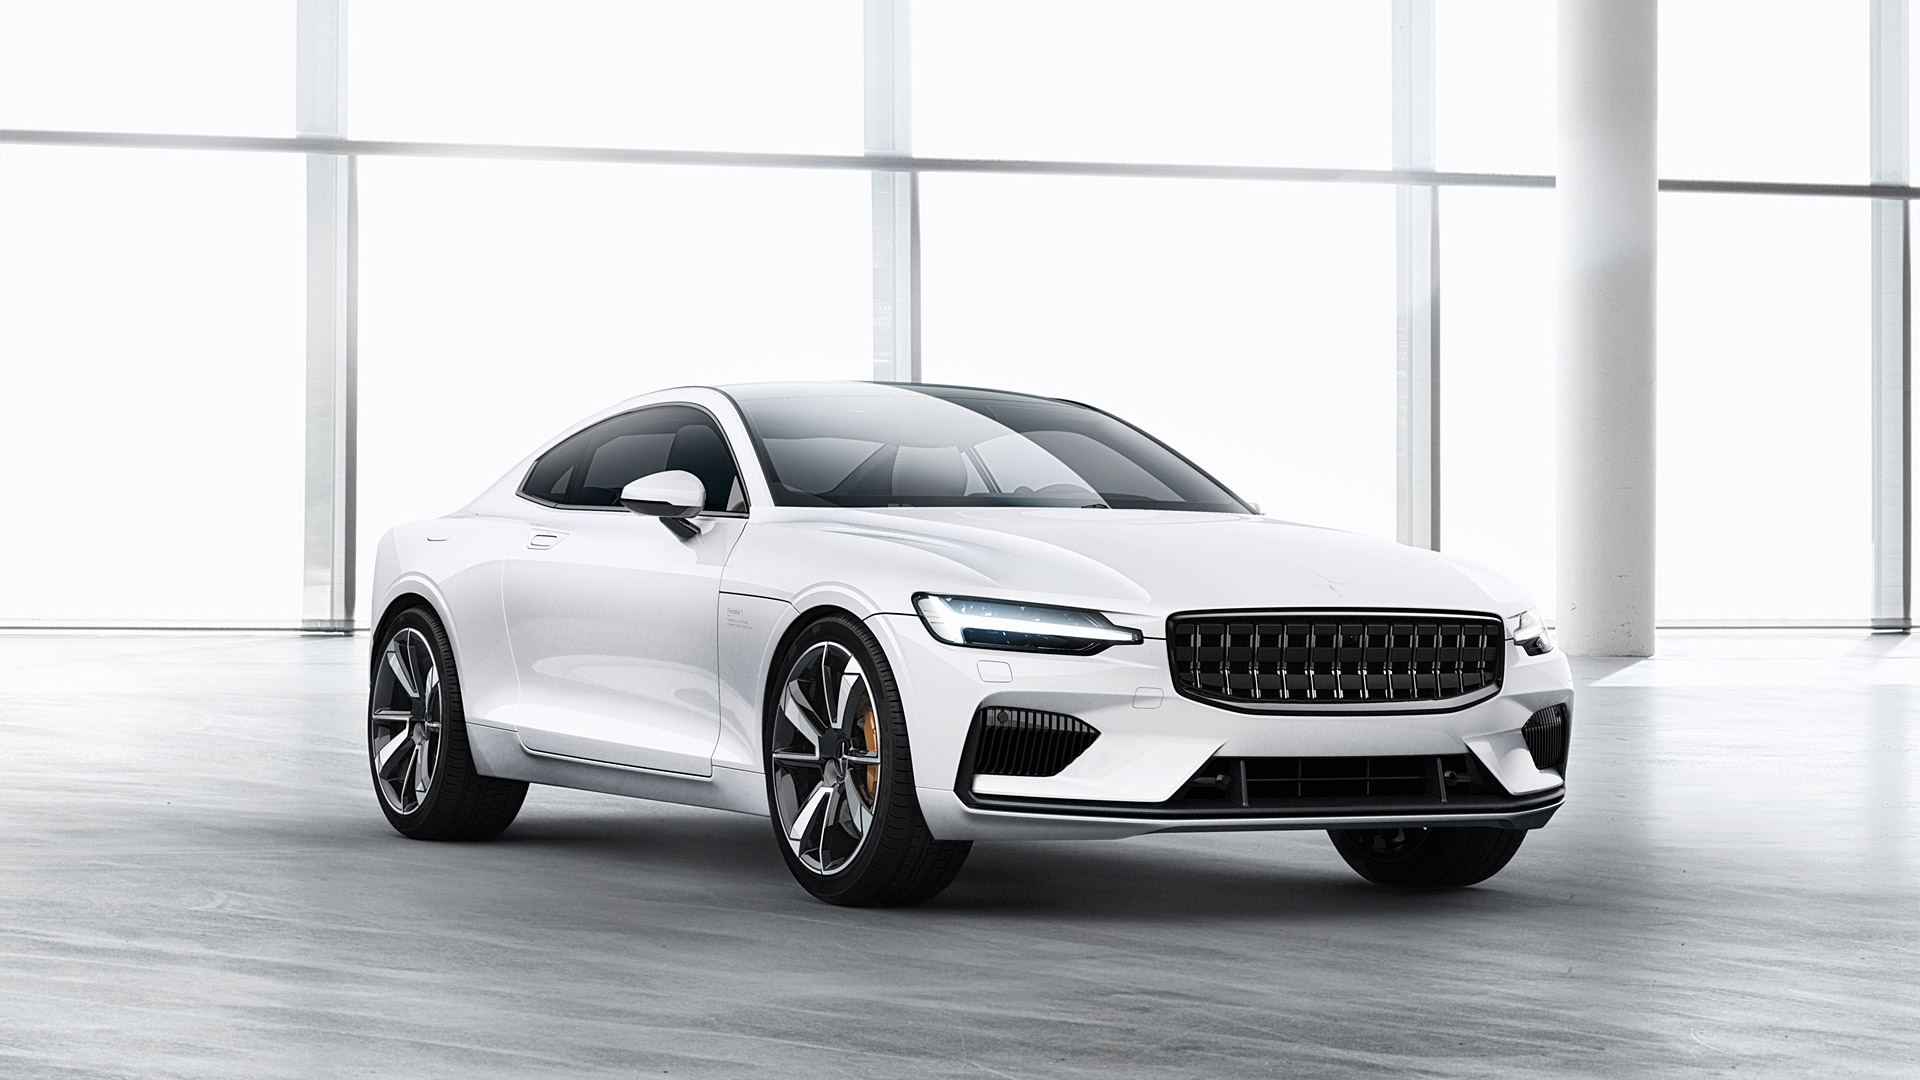 2020 Polestar 1 Wallpapers HD Images   WSupercars 1920x1080